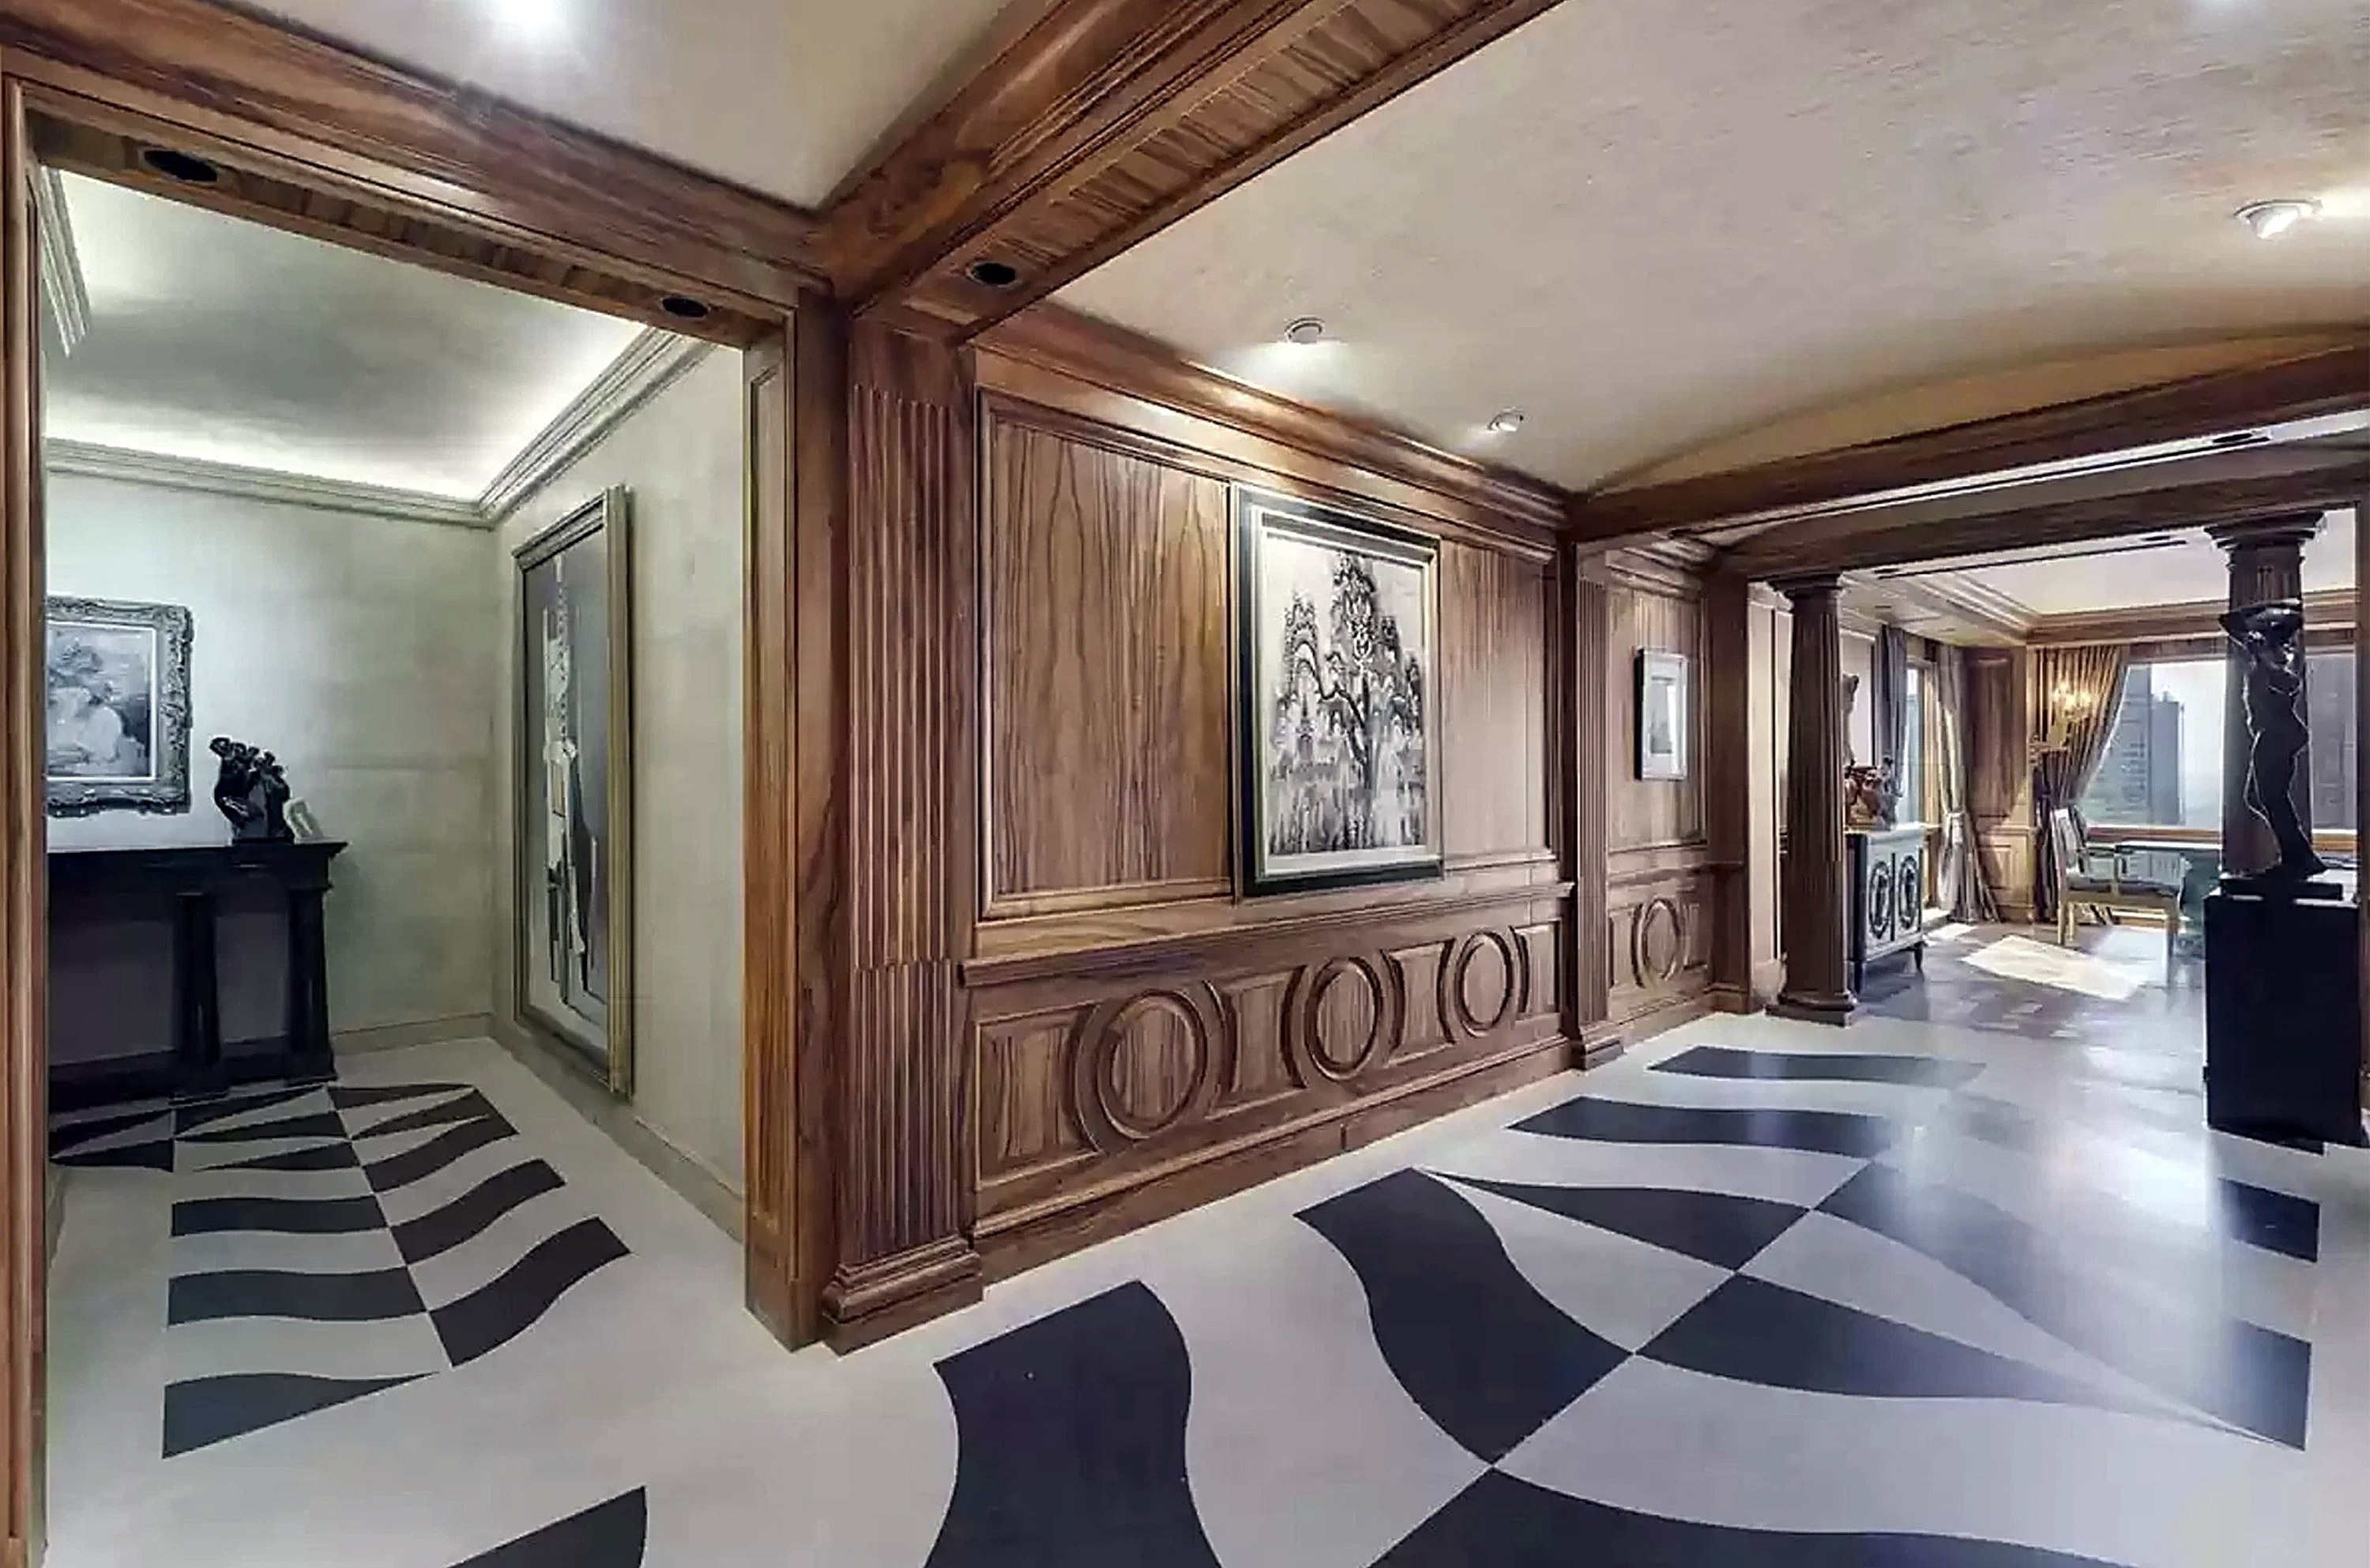 Two-toned floors and ornate artwork on the walls